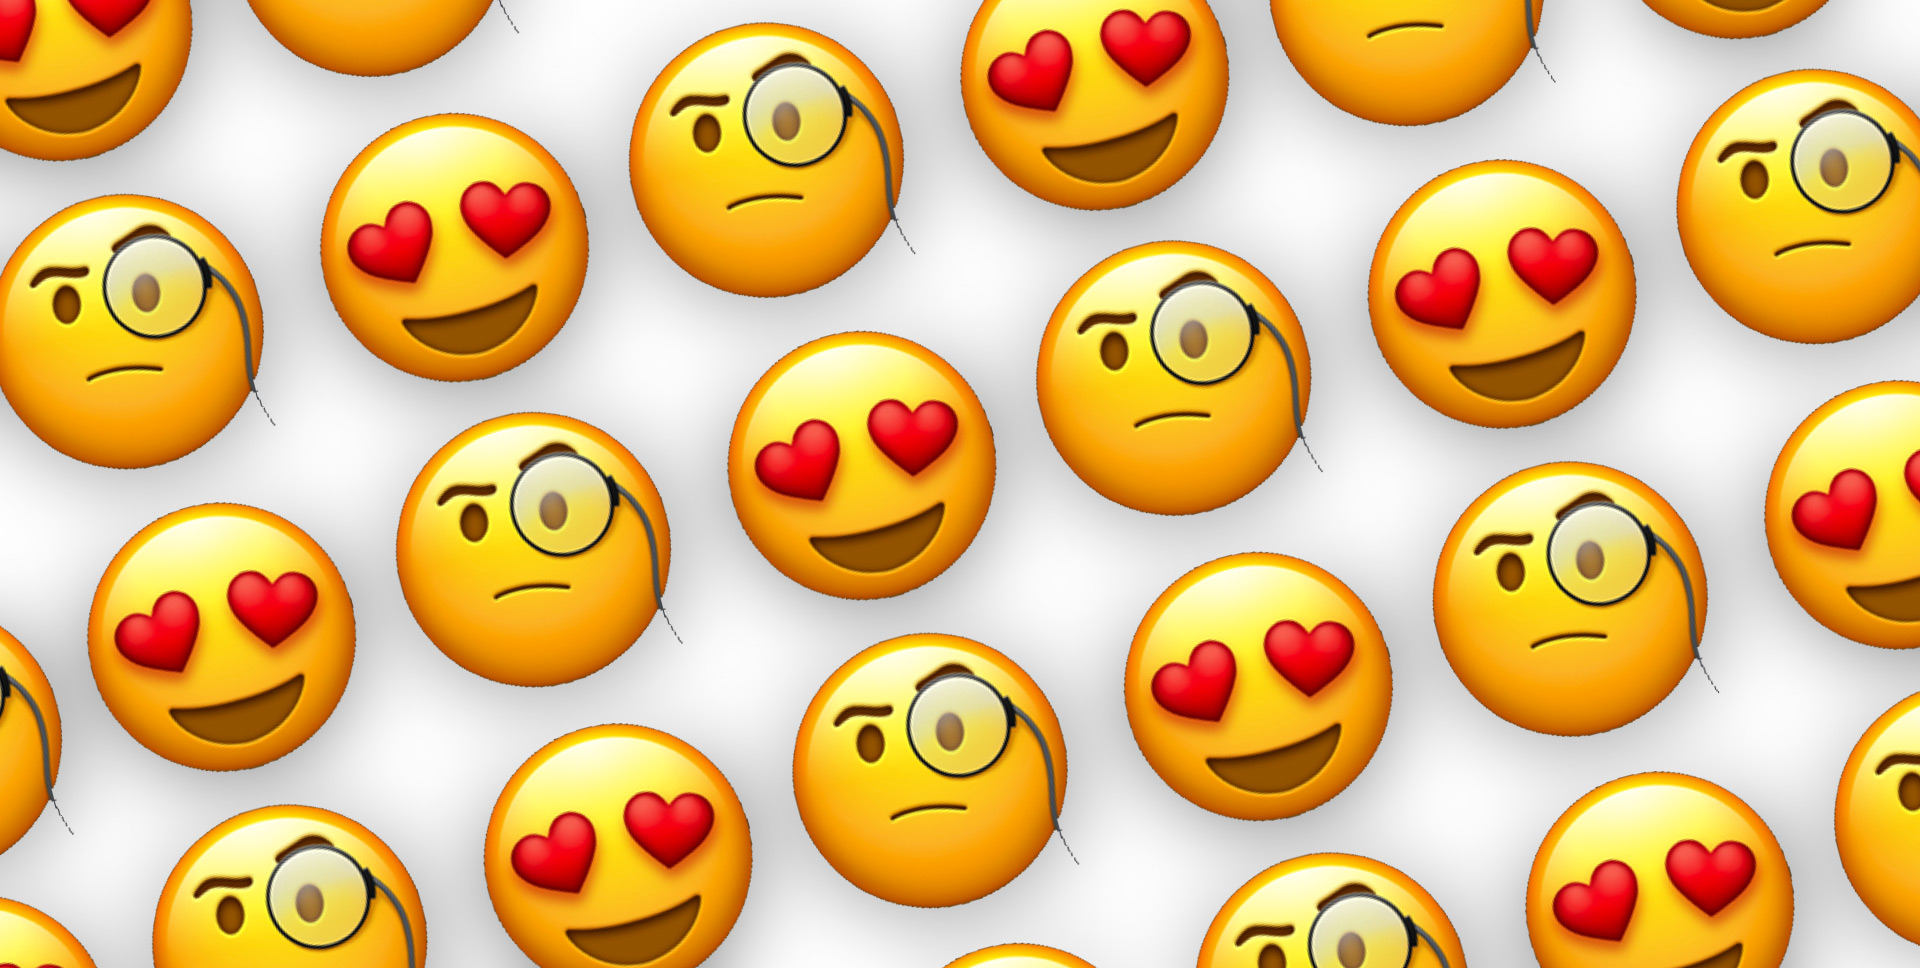 Pattern of Heart Eyes and Monocle Emojis